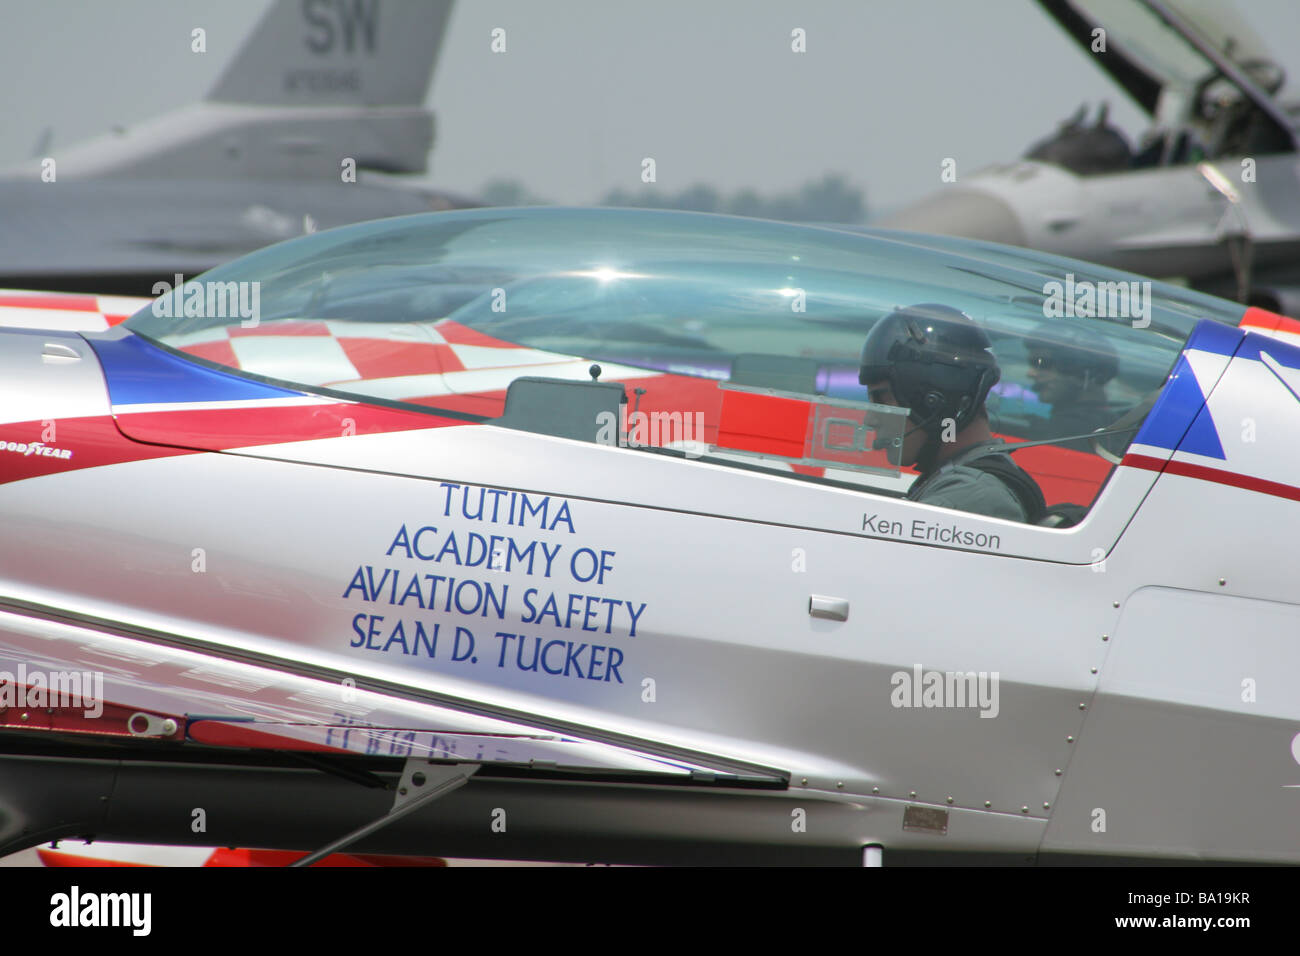 Ken Erickson With Aerobatic Airplane at Dayton Air Show Vandalia Ohio Stock Photo